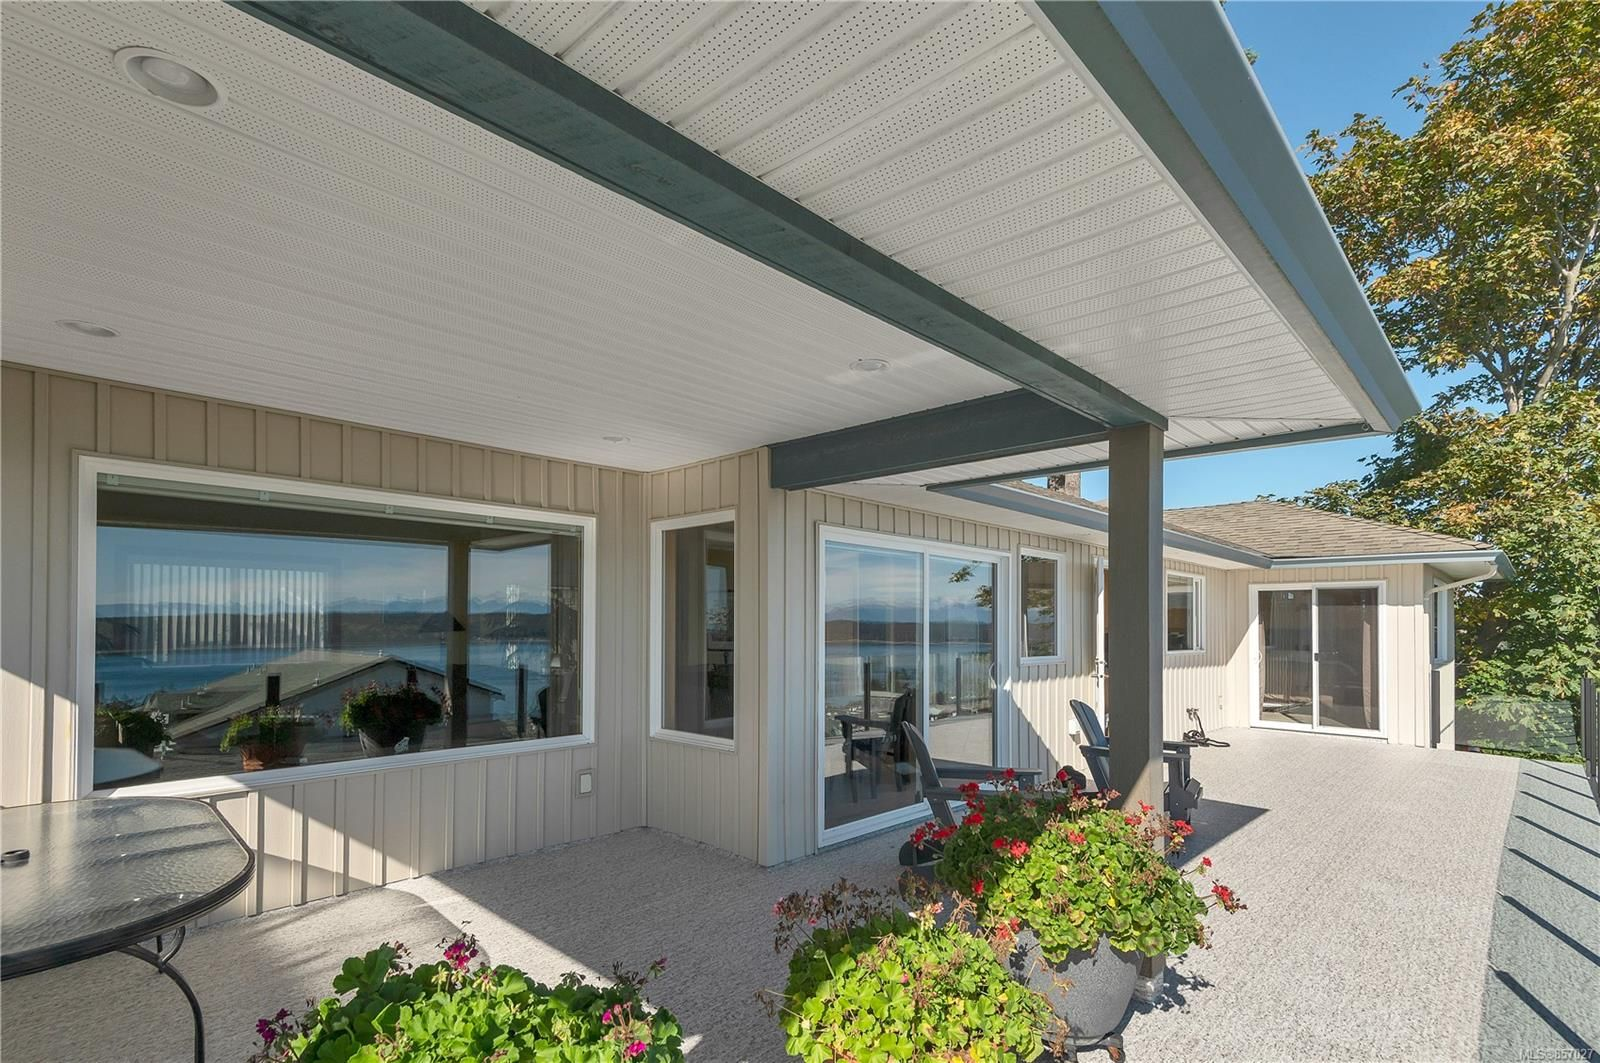 Photo 4: Photos: 253 S Alder St in : CR Campbell River South House for sale (Campbell River)  : MLS®# 857027